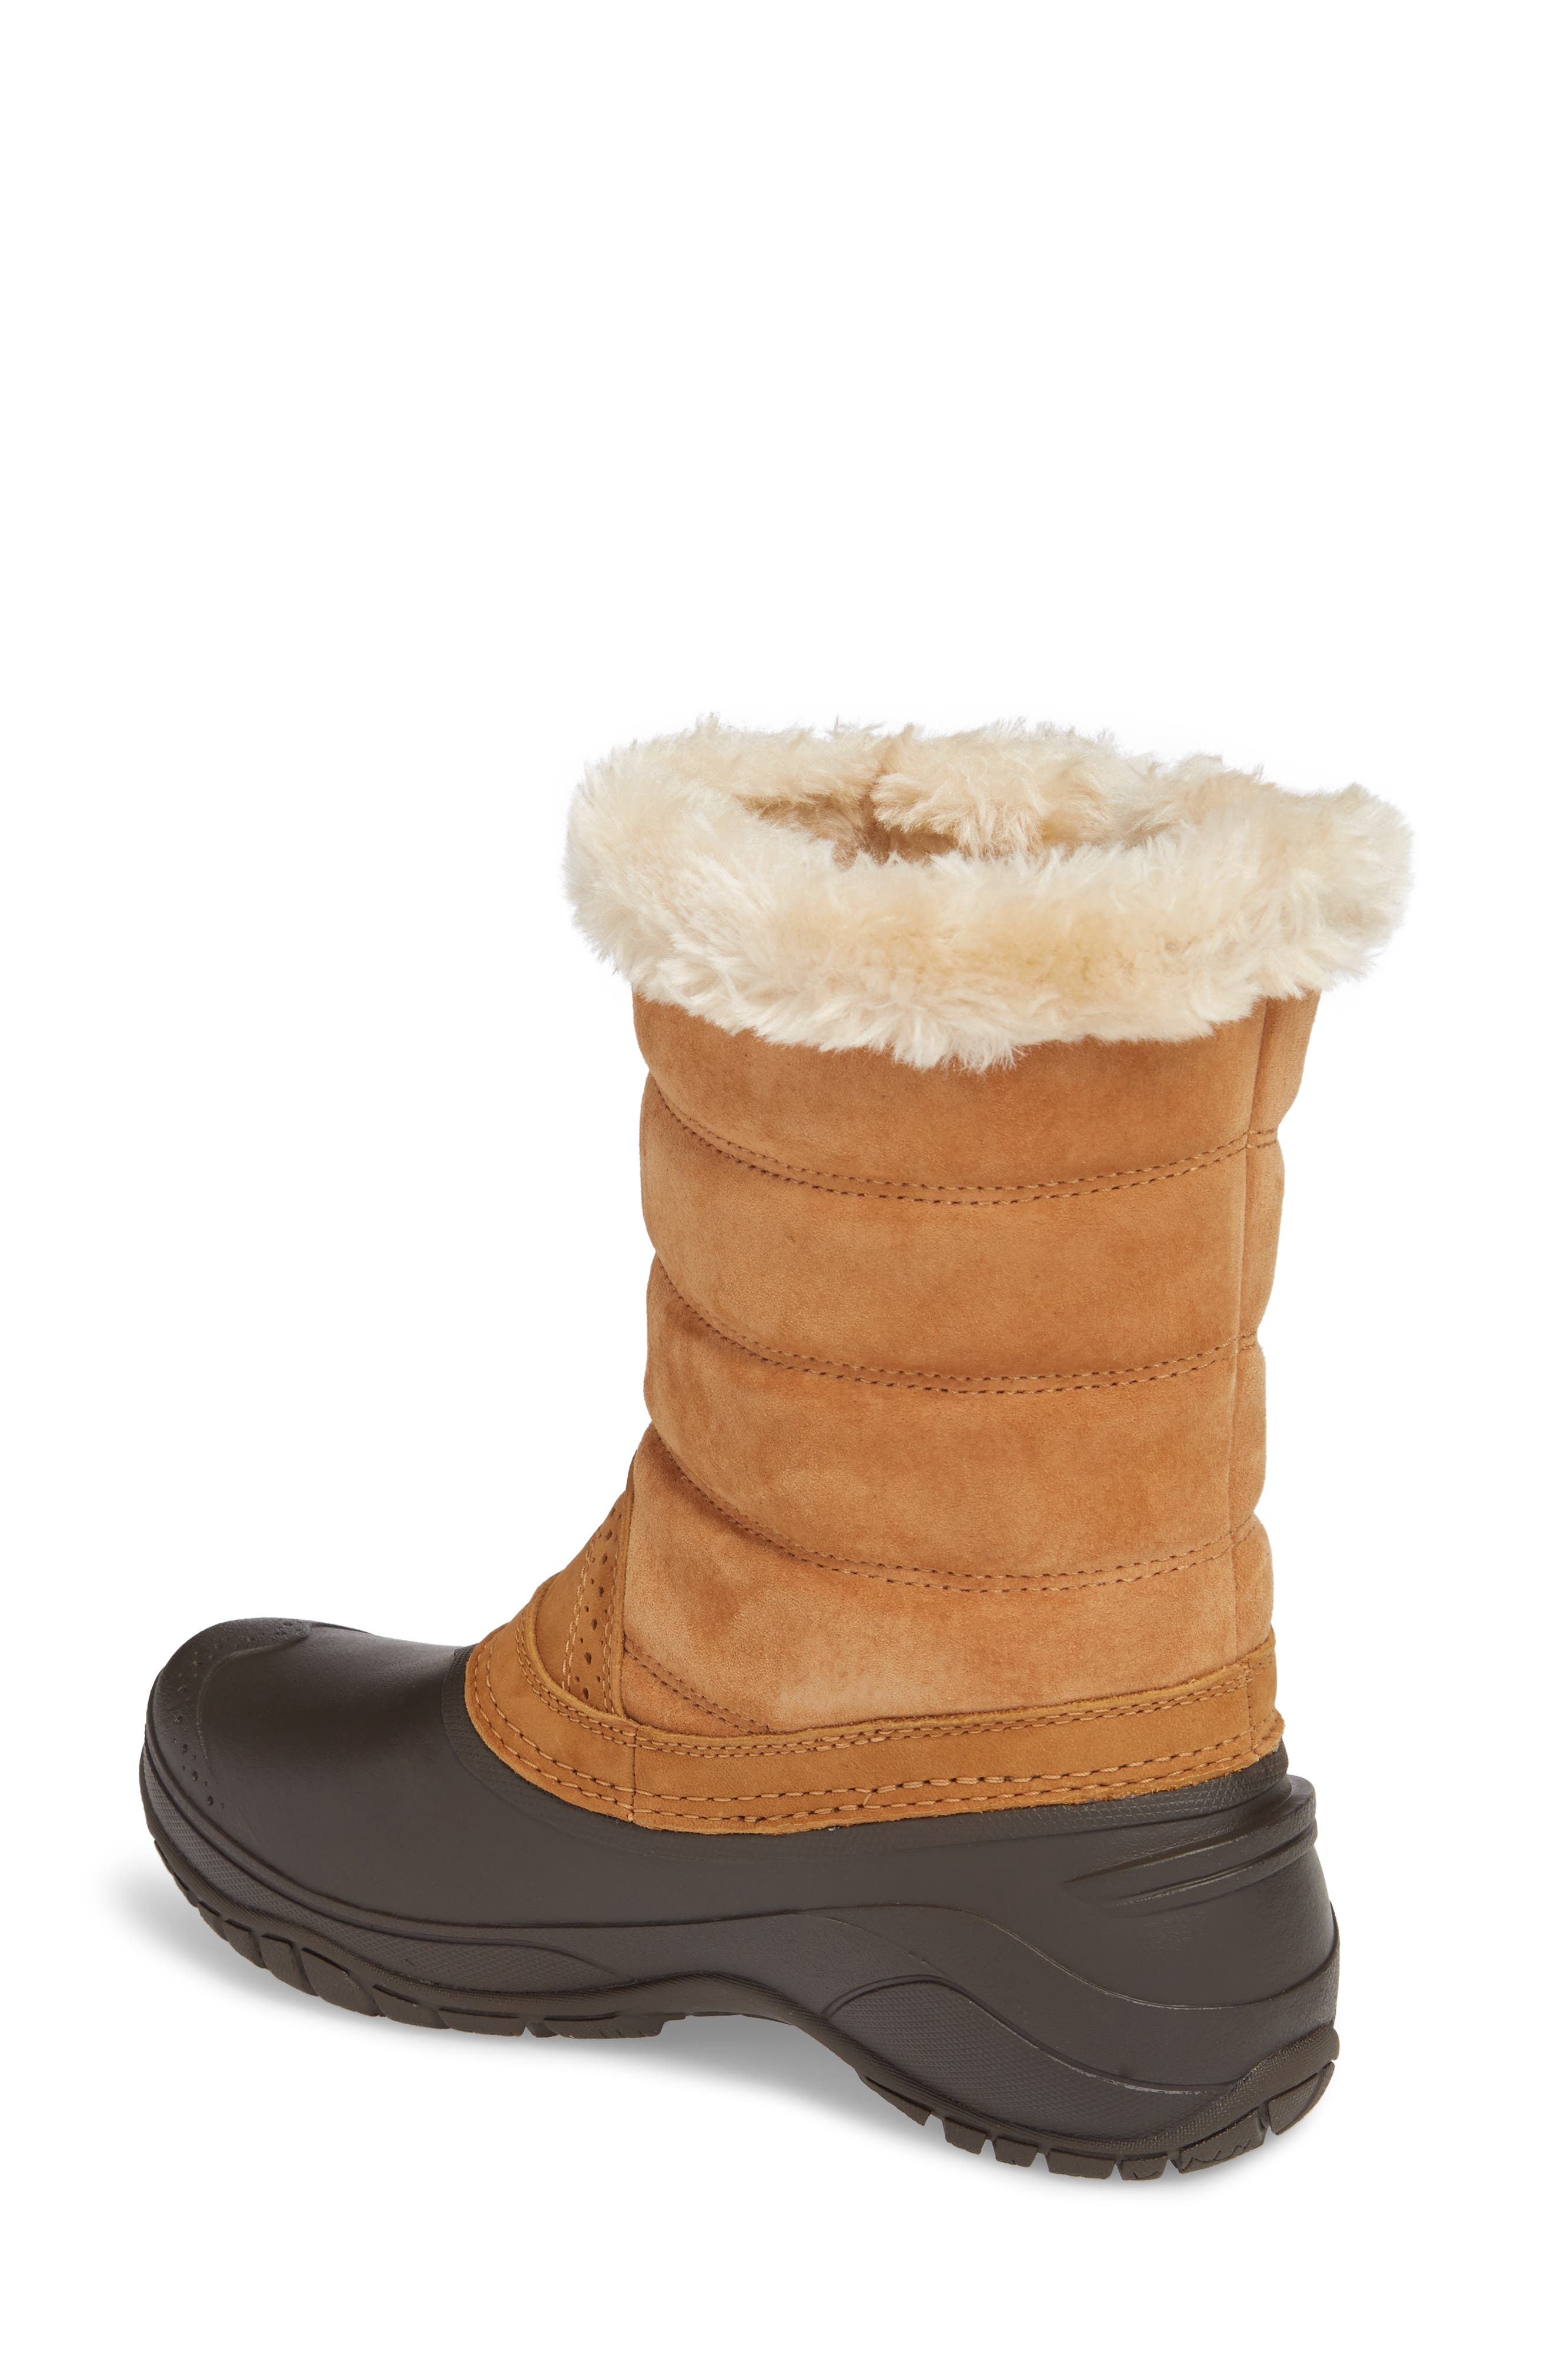 Alternate Image 2  - The North Face Shellista III Waterproof Pull-On Snow Boot (Women)